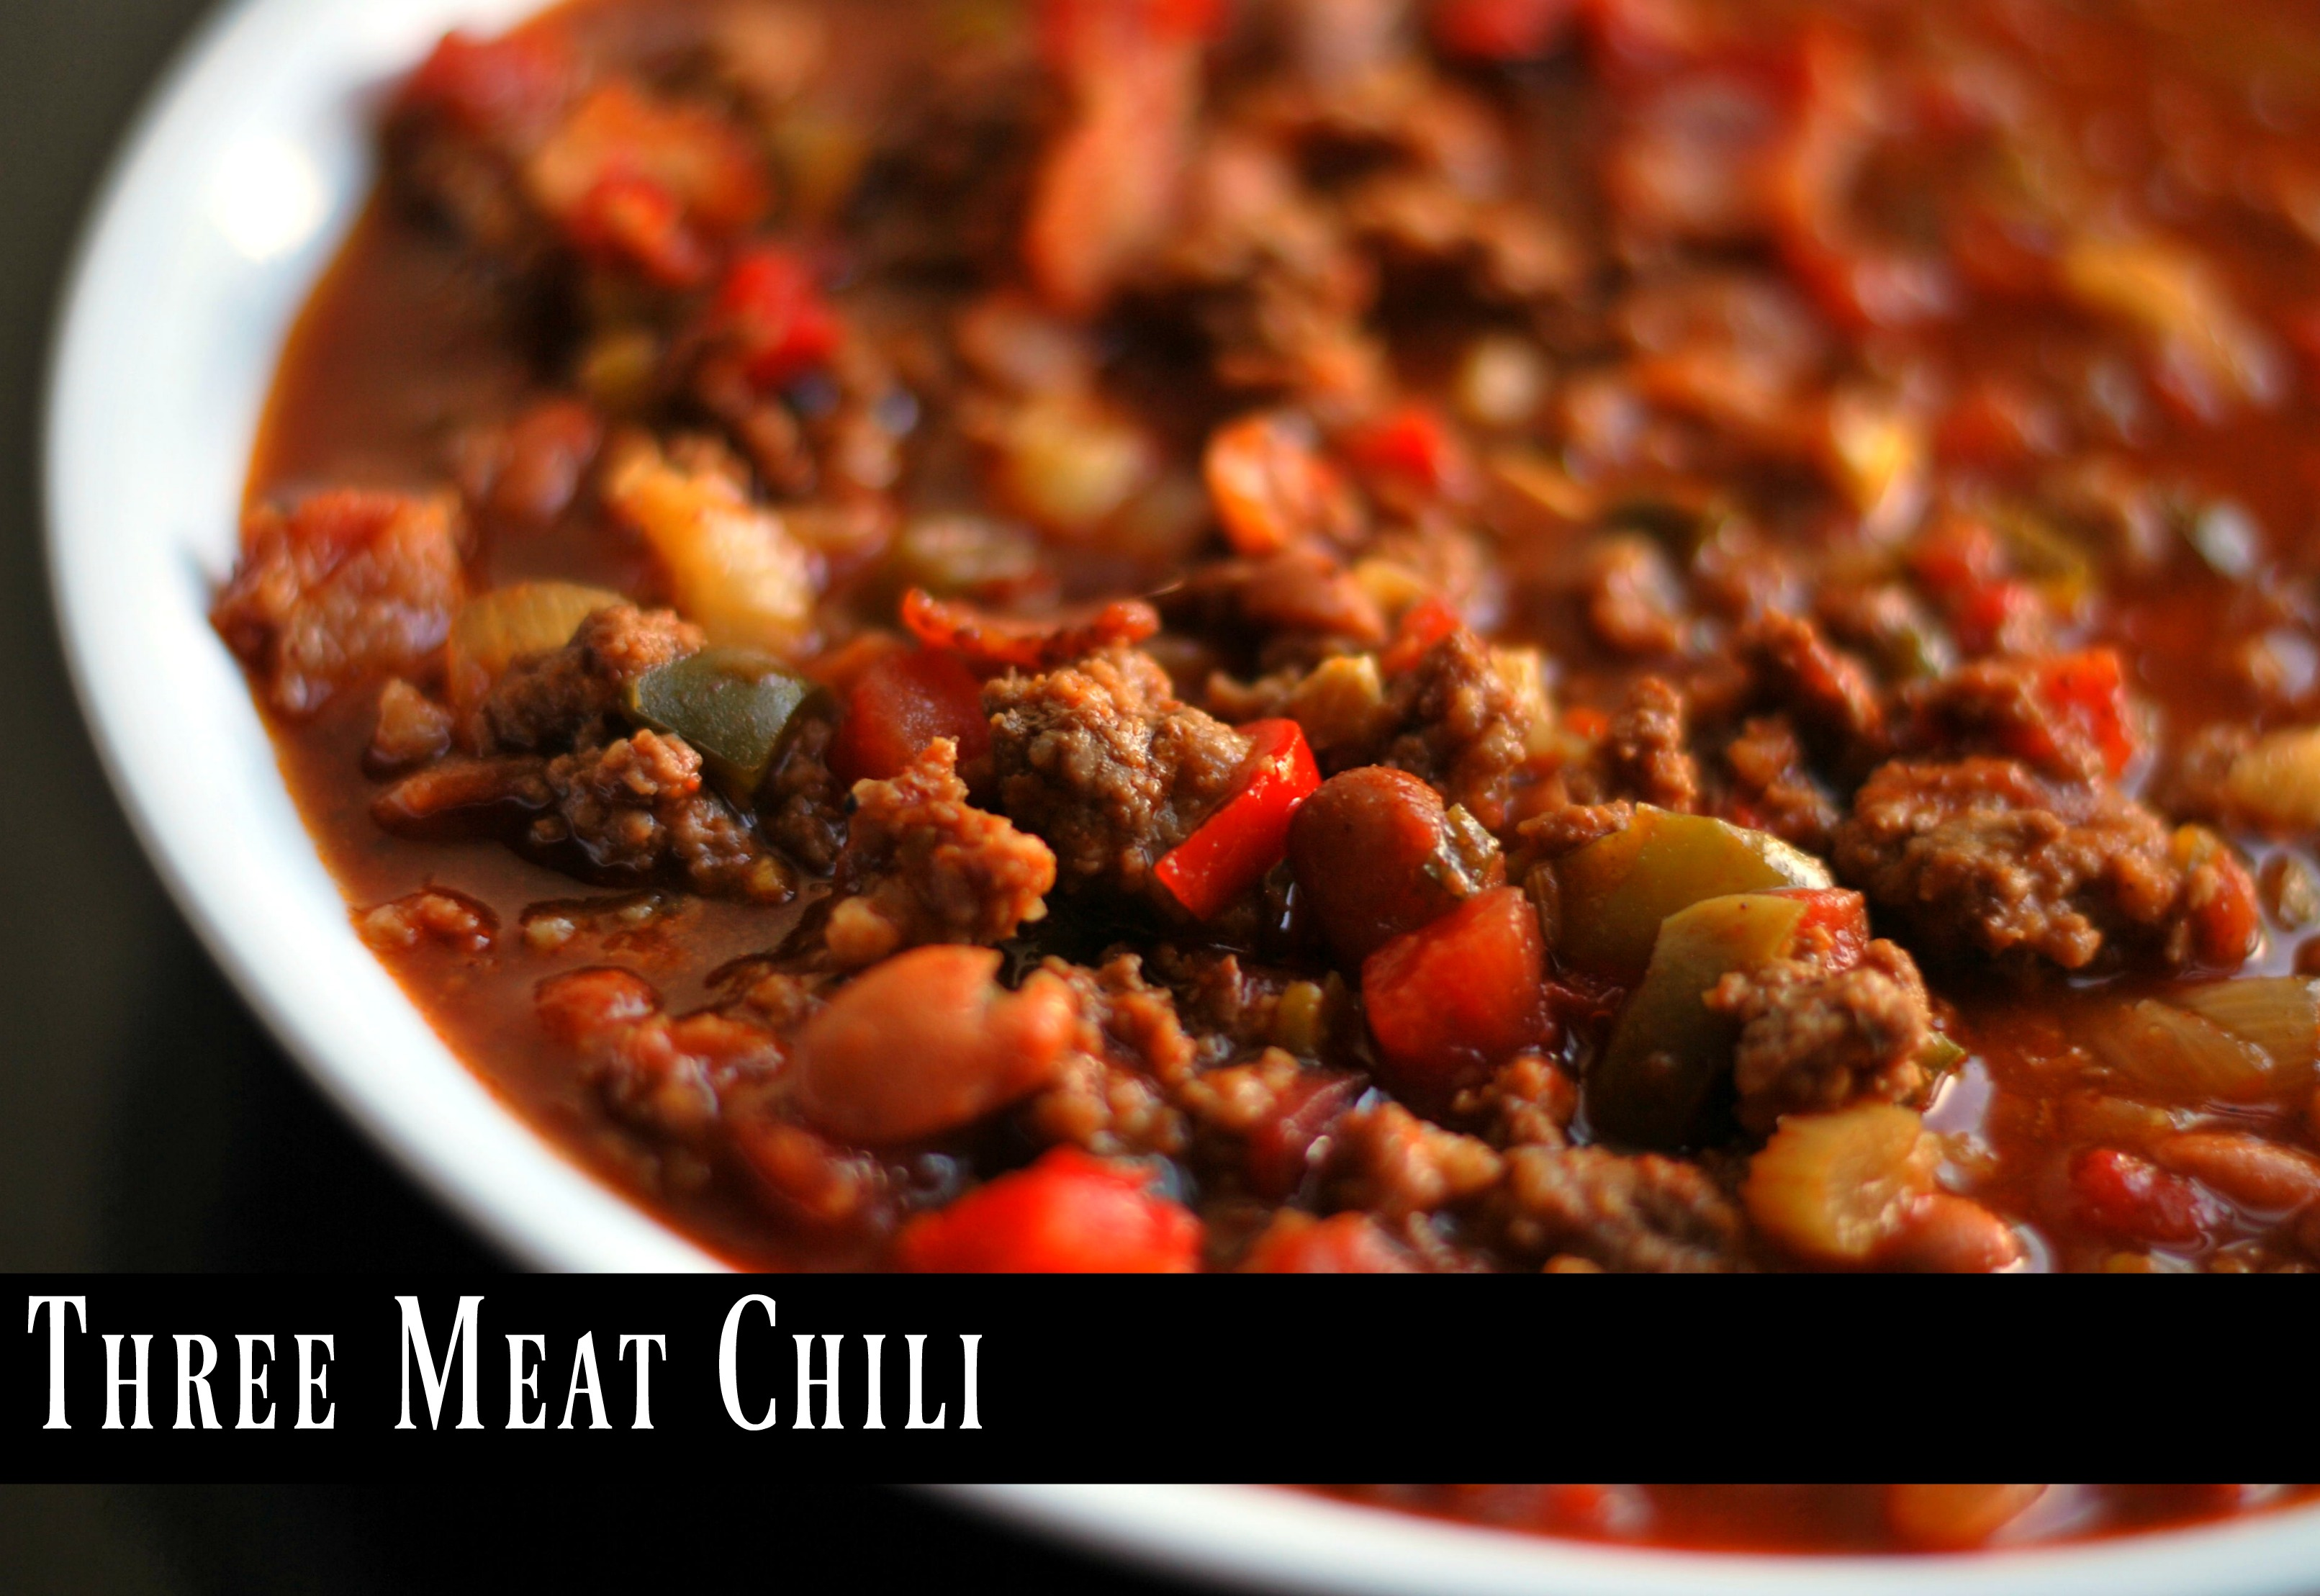 Three Meat Chili